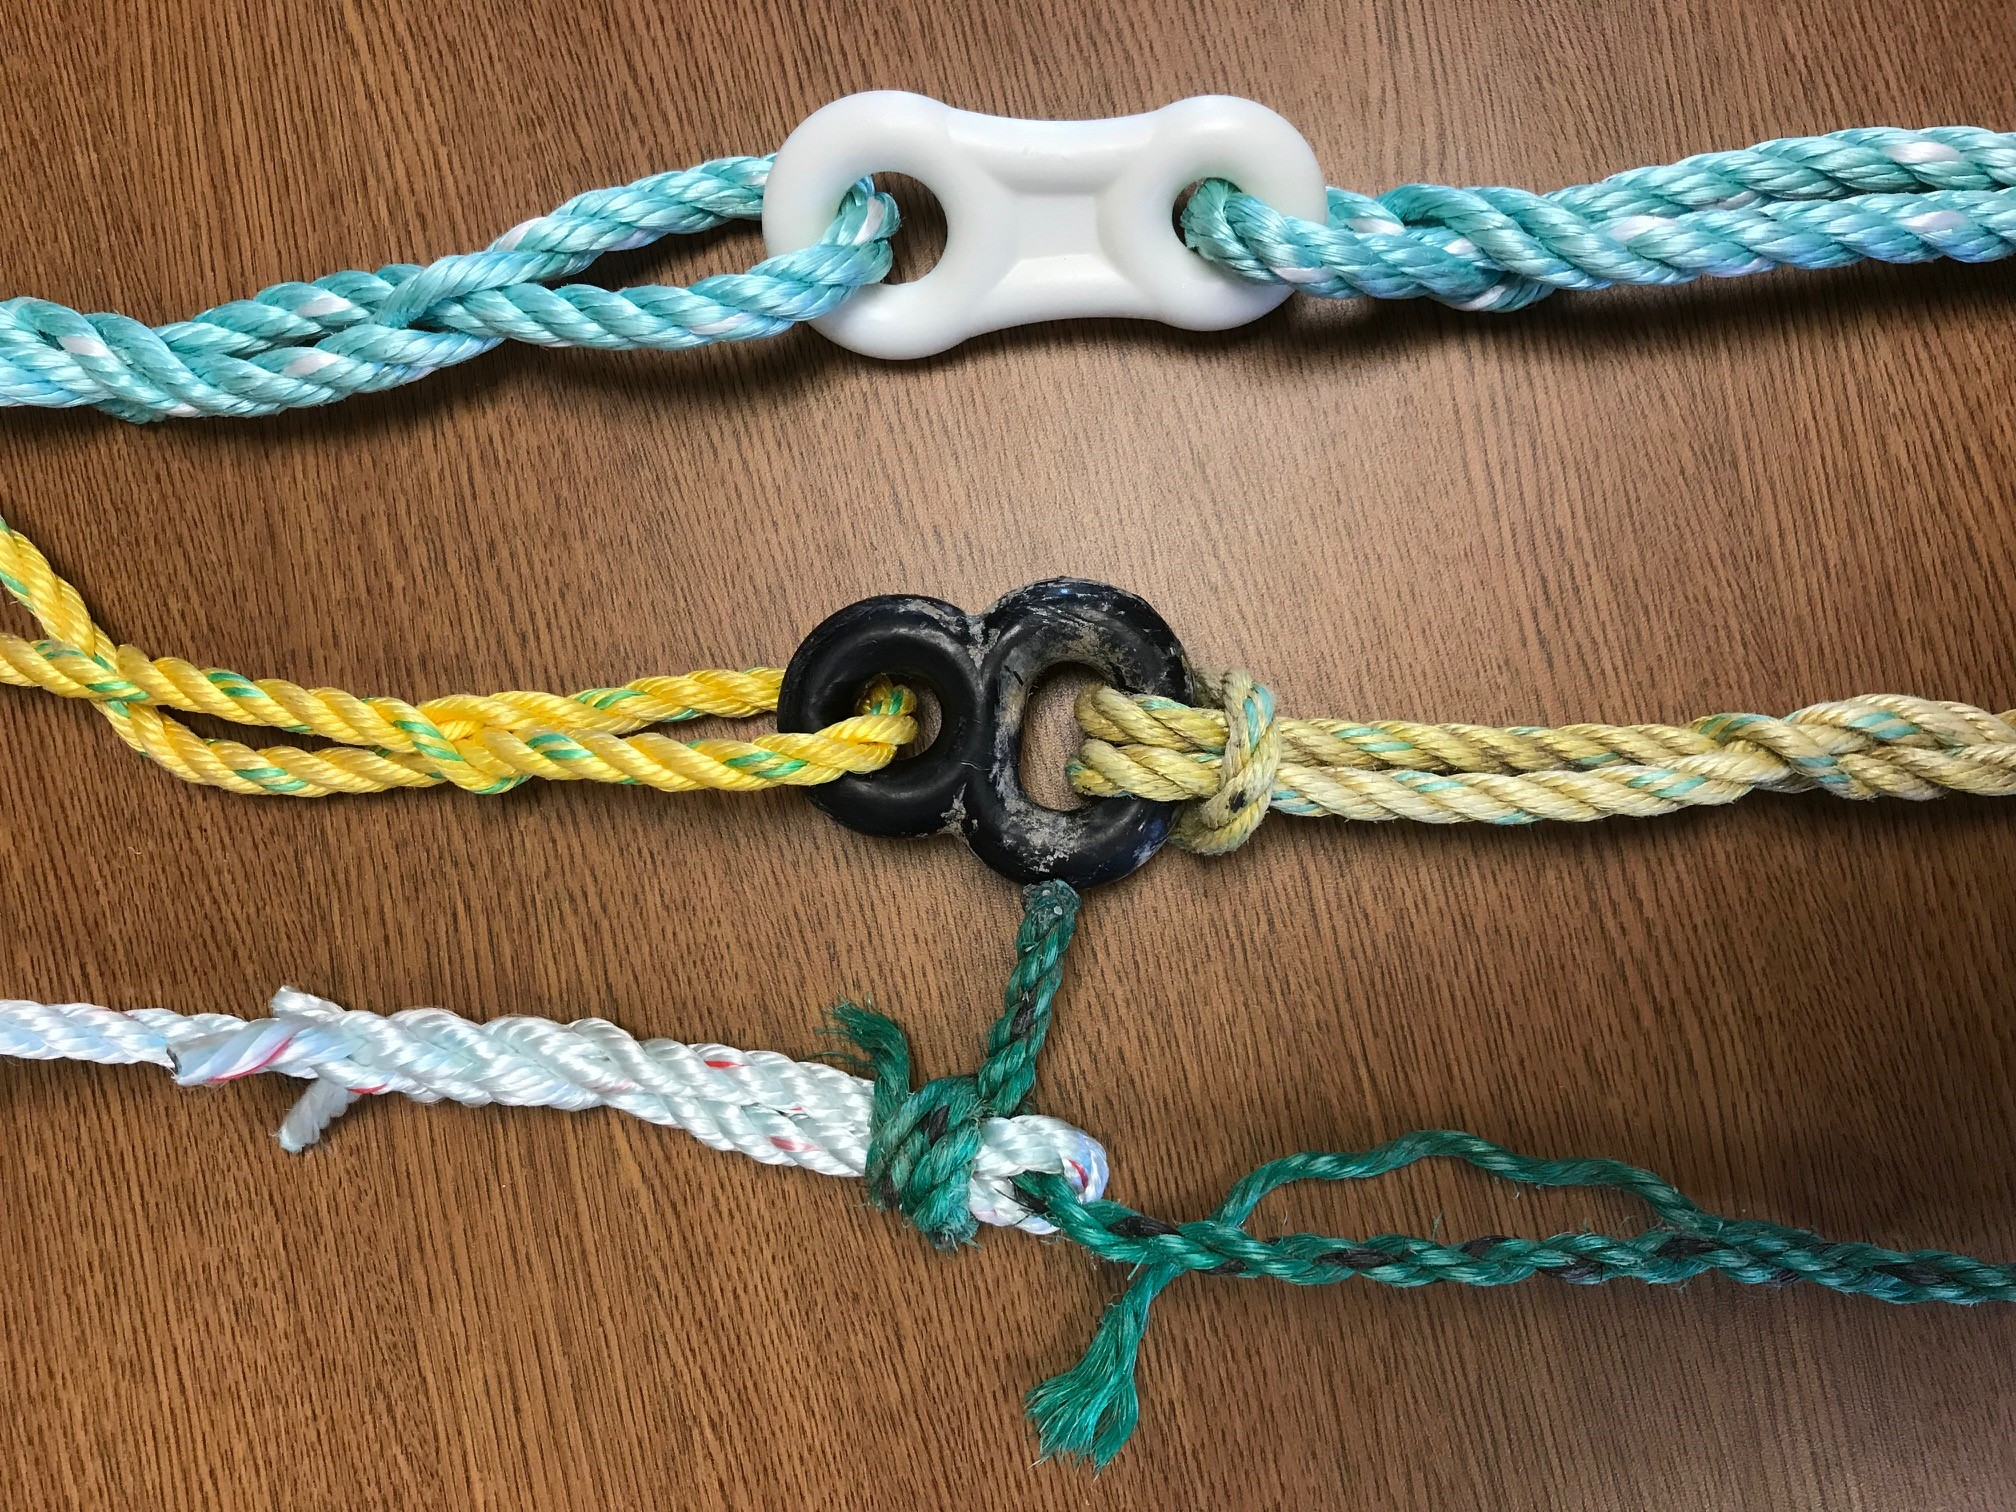 Rope tests